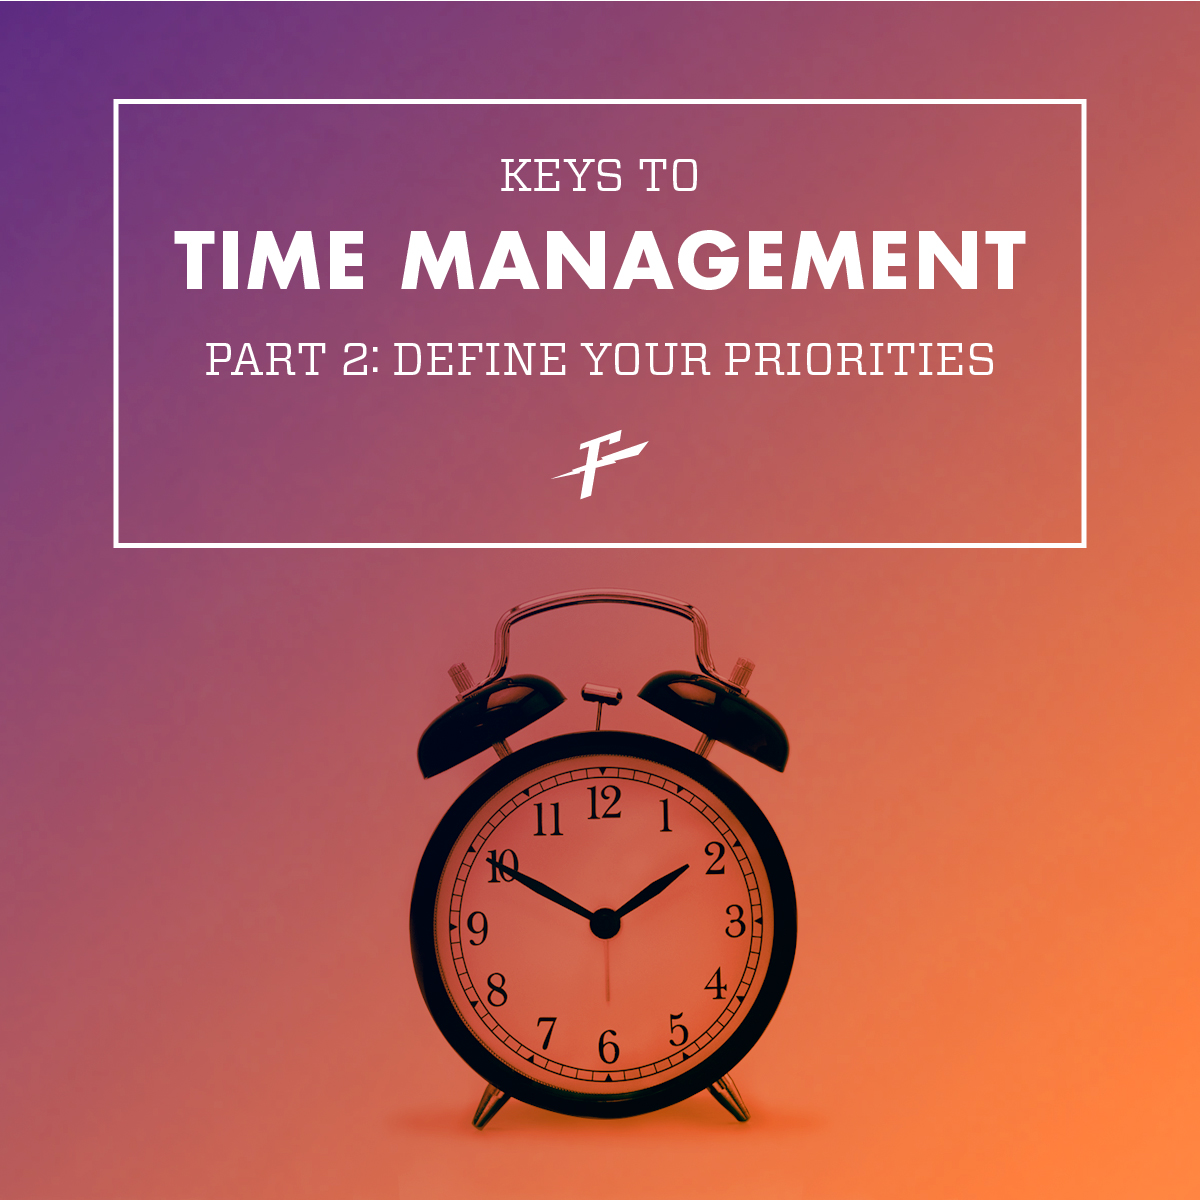 Keys To Time Management: Define Your Priorities graphic with clock